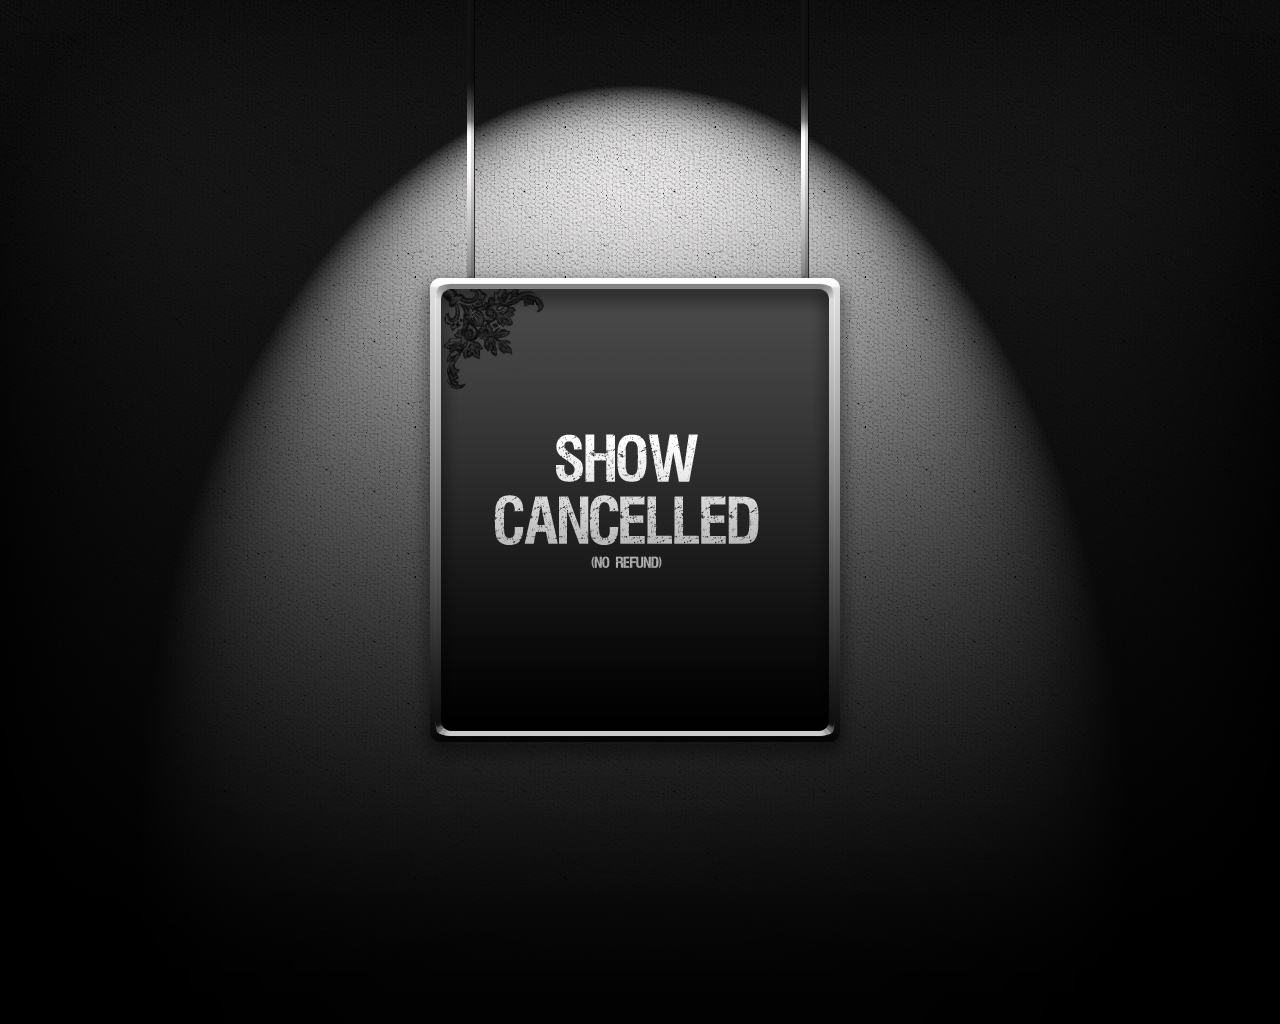 Show cancelled by goergen